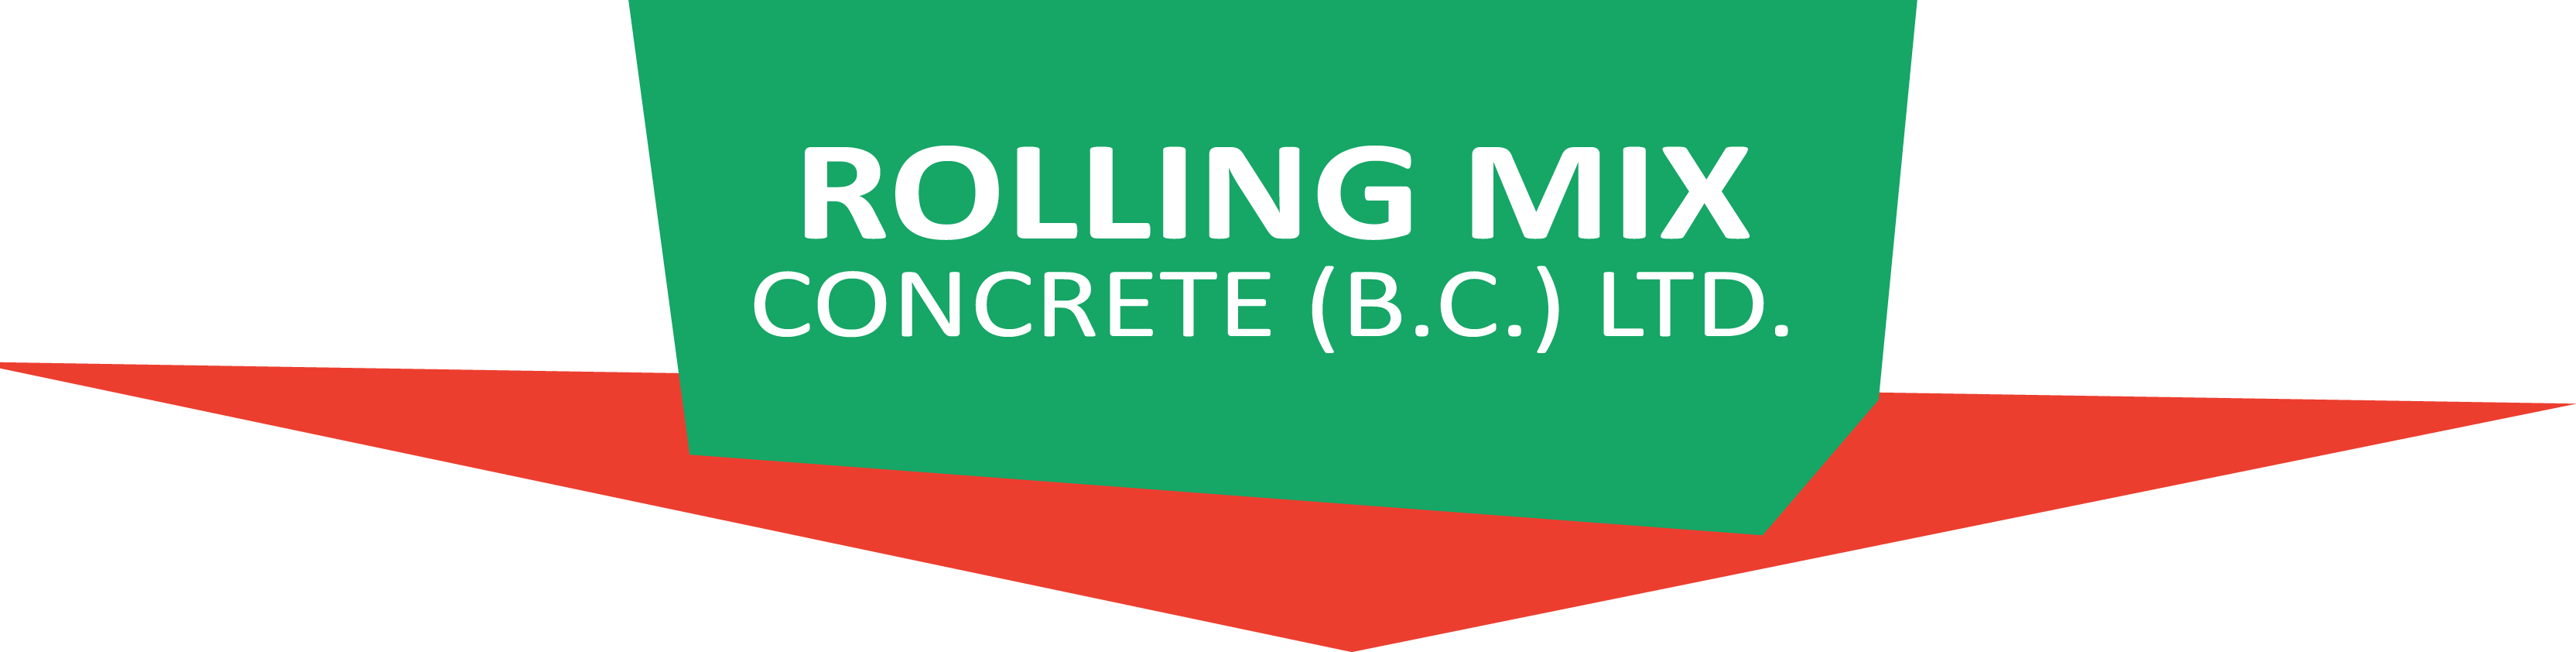 ROLLING MIX CONCRETE BC LTD logo